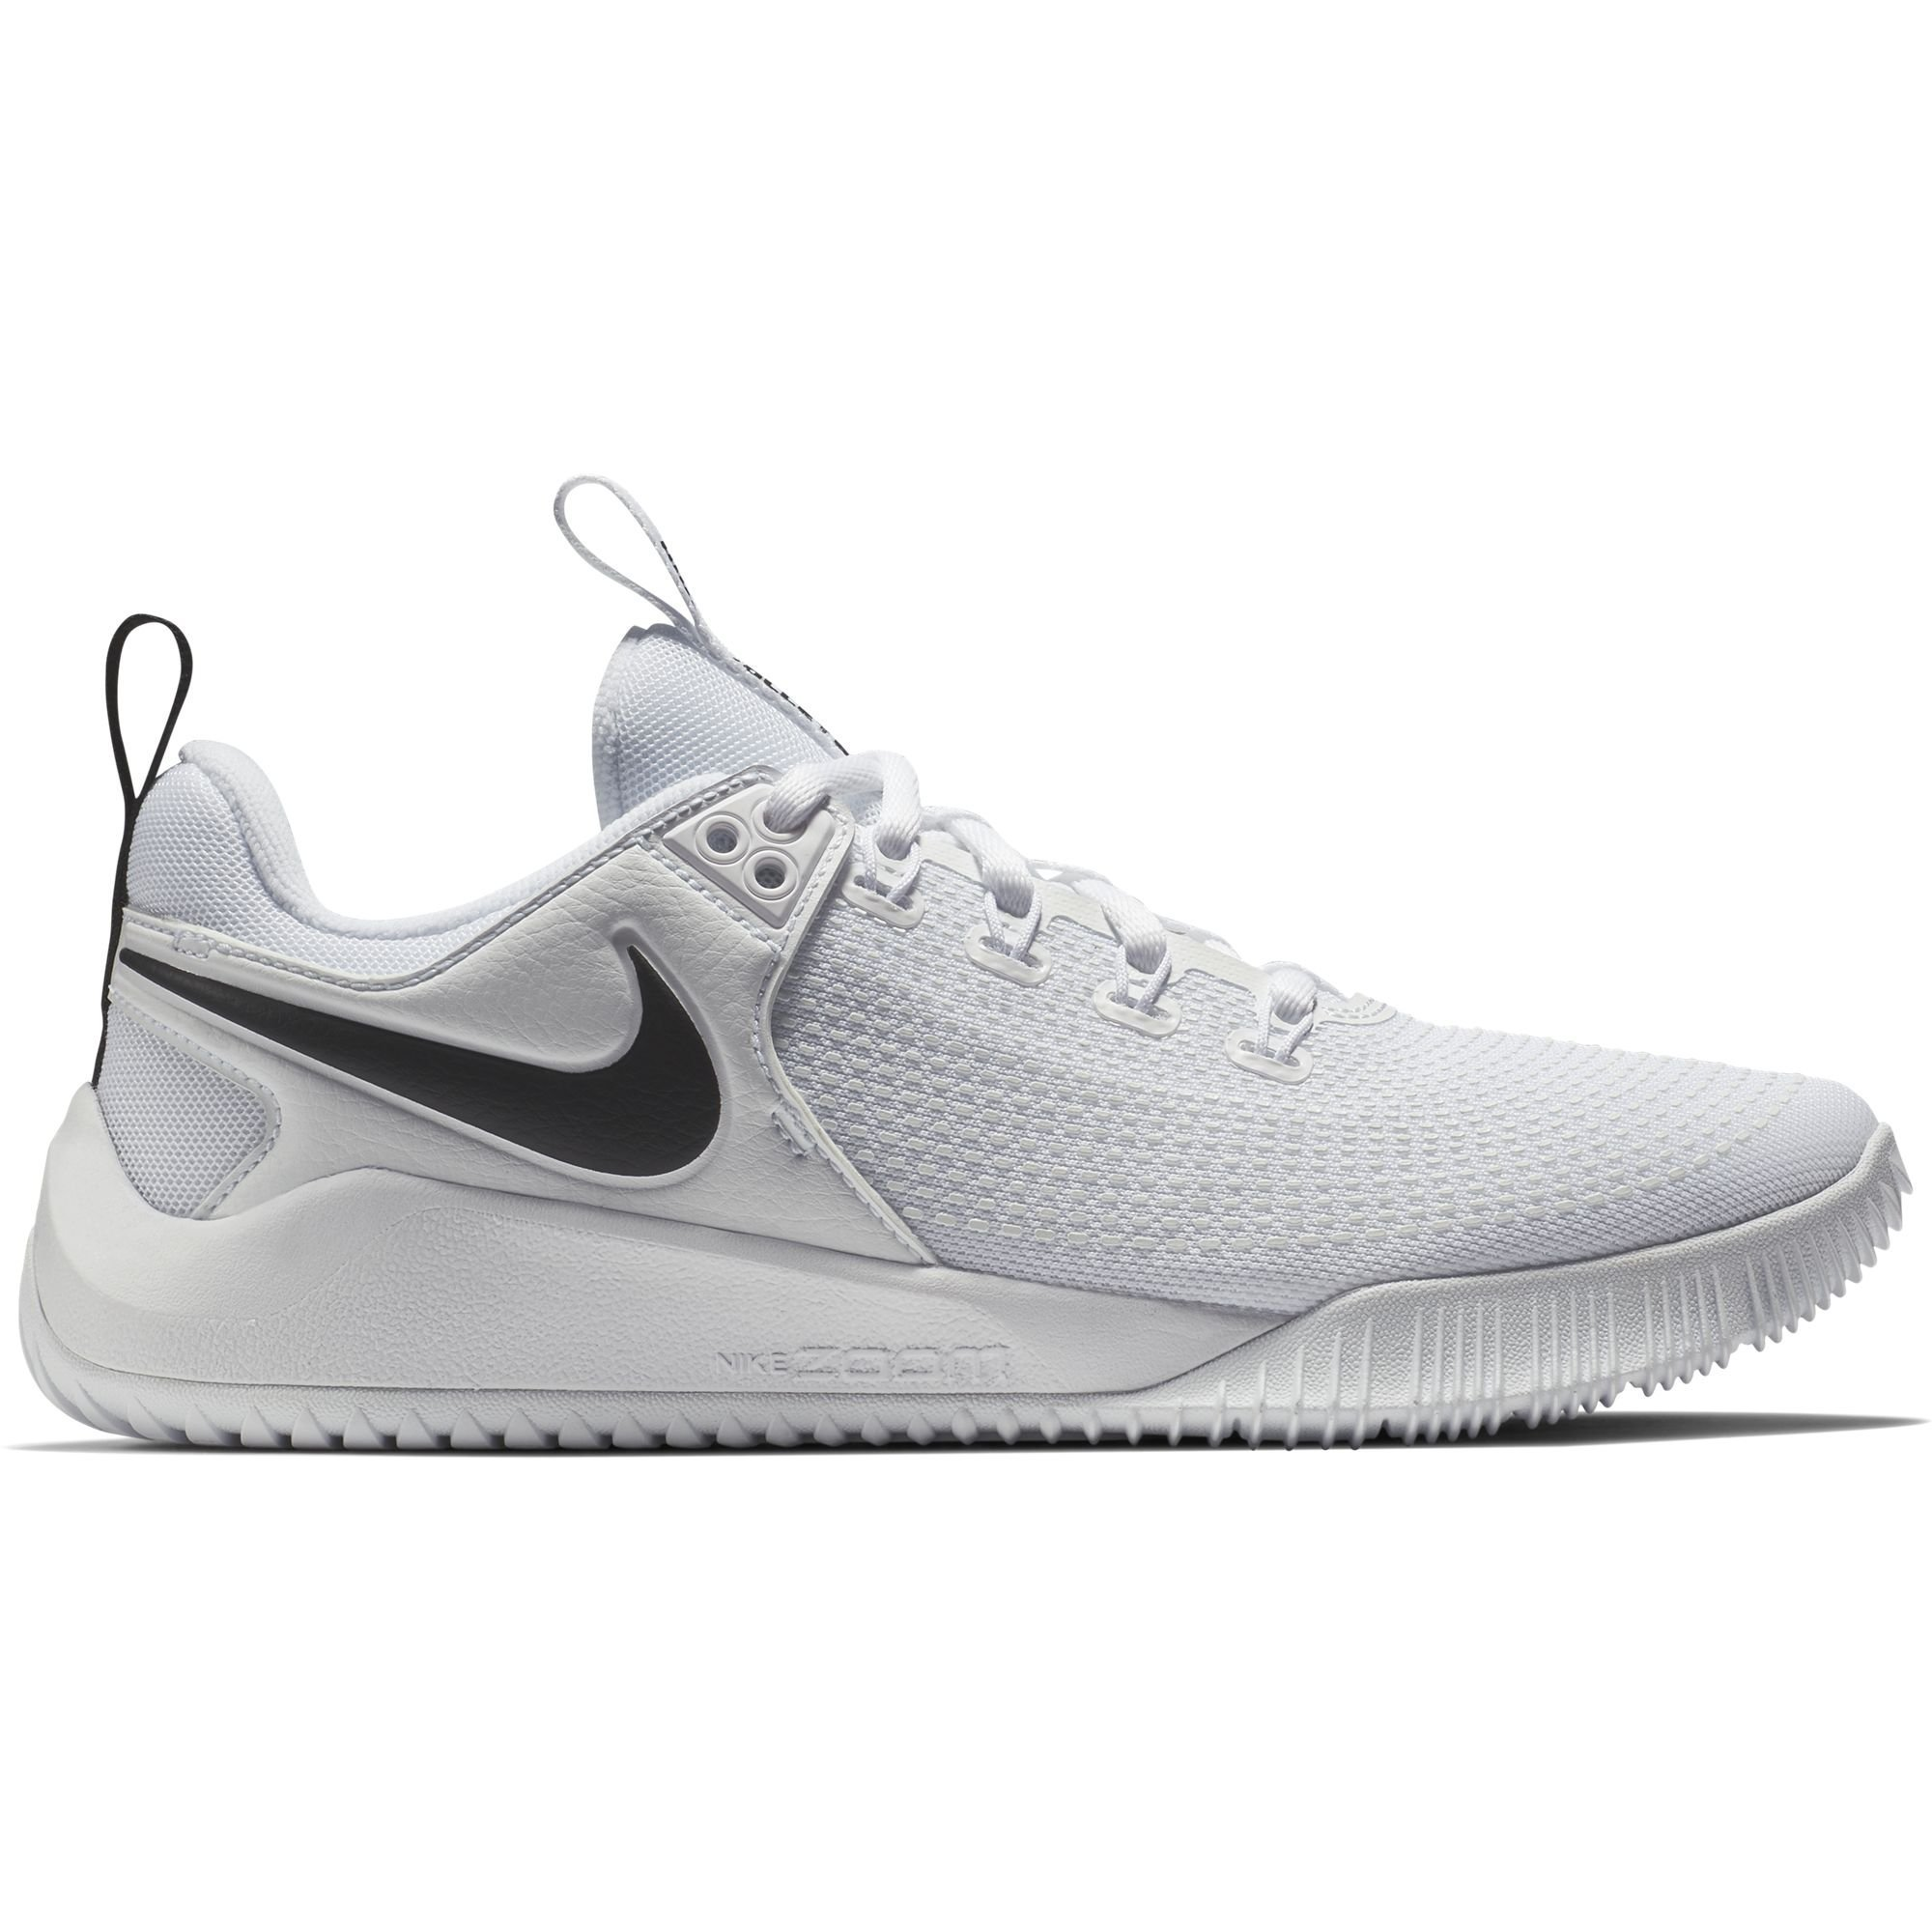 NIKE Women's Zoom Hyperface 2 Volleyball Shoes (6.5 B(M) US, White/Black)